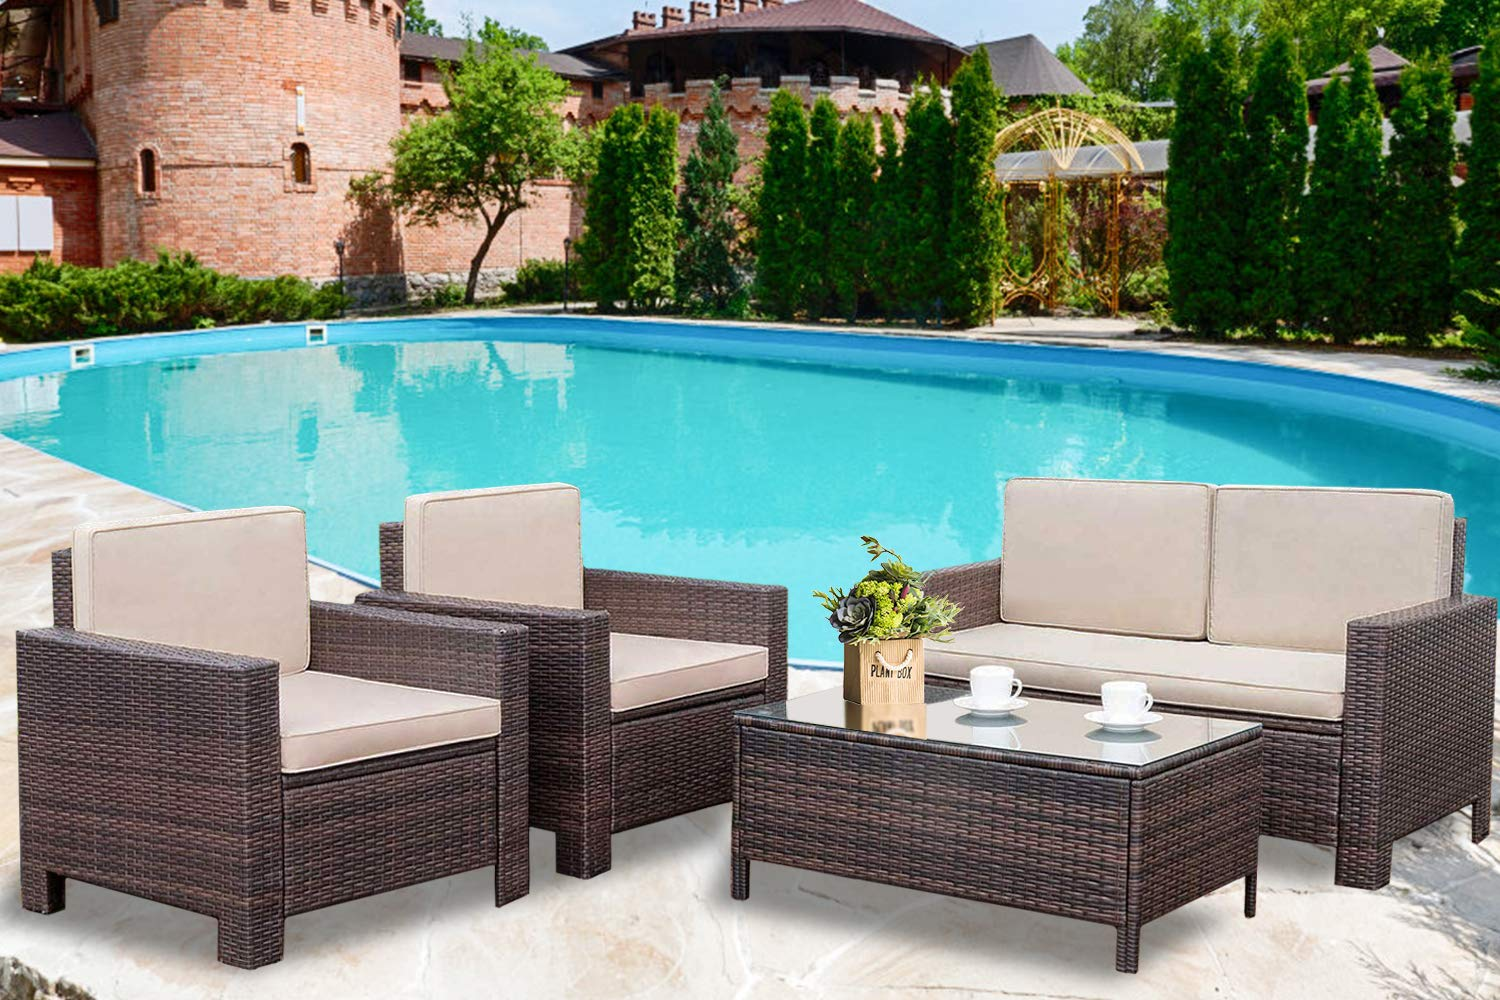 Amazon.com : Patio Furniture Set 4 Pieces Outdoor Wicker Sofa Rattan ...